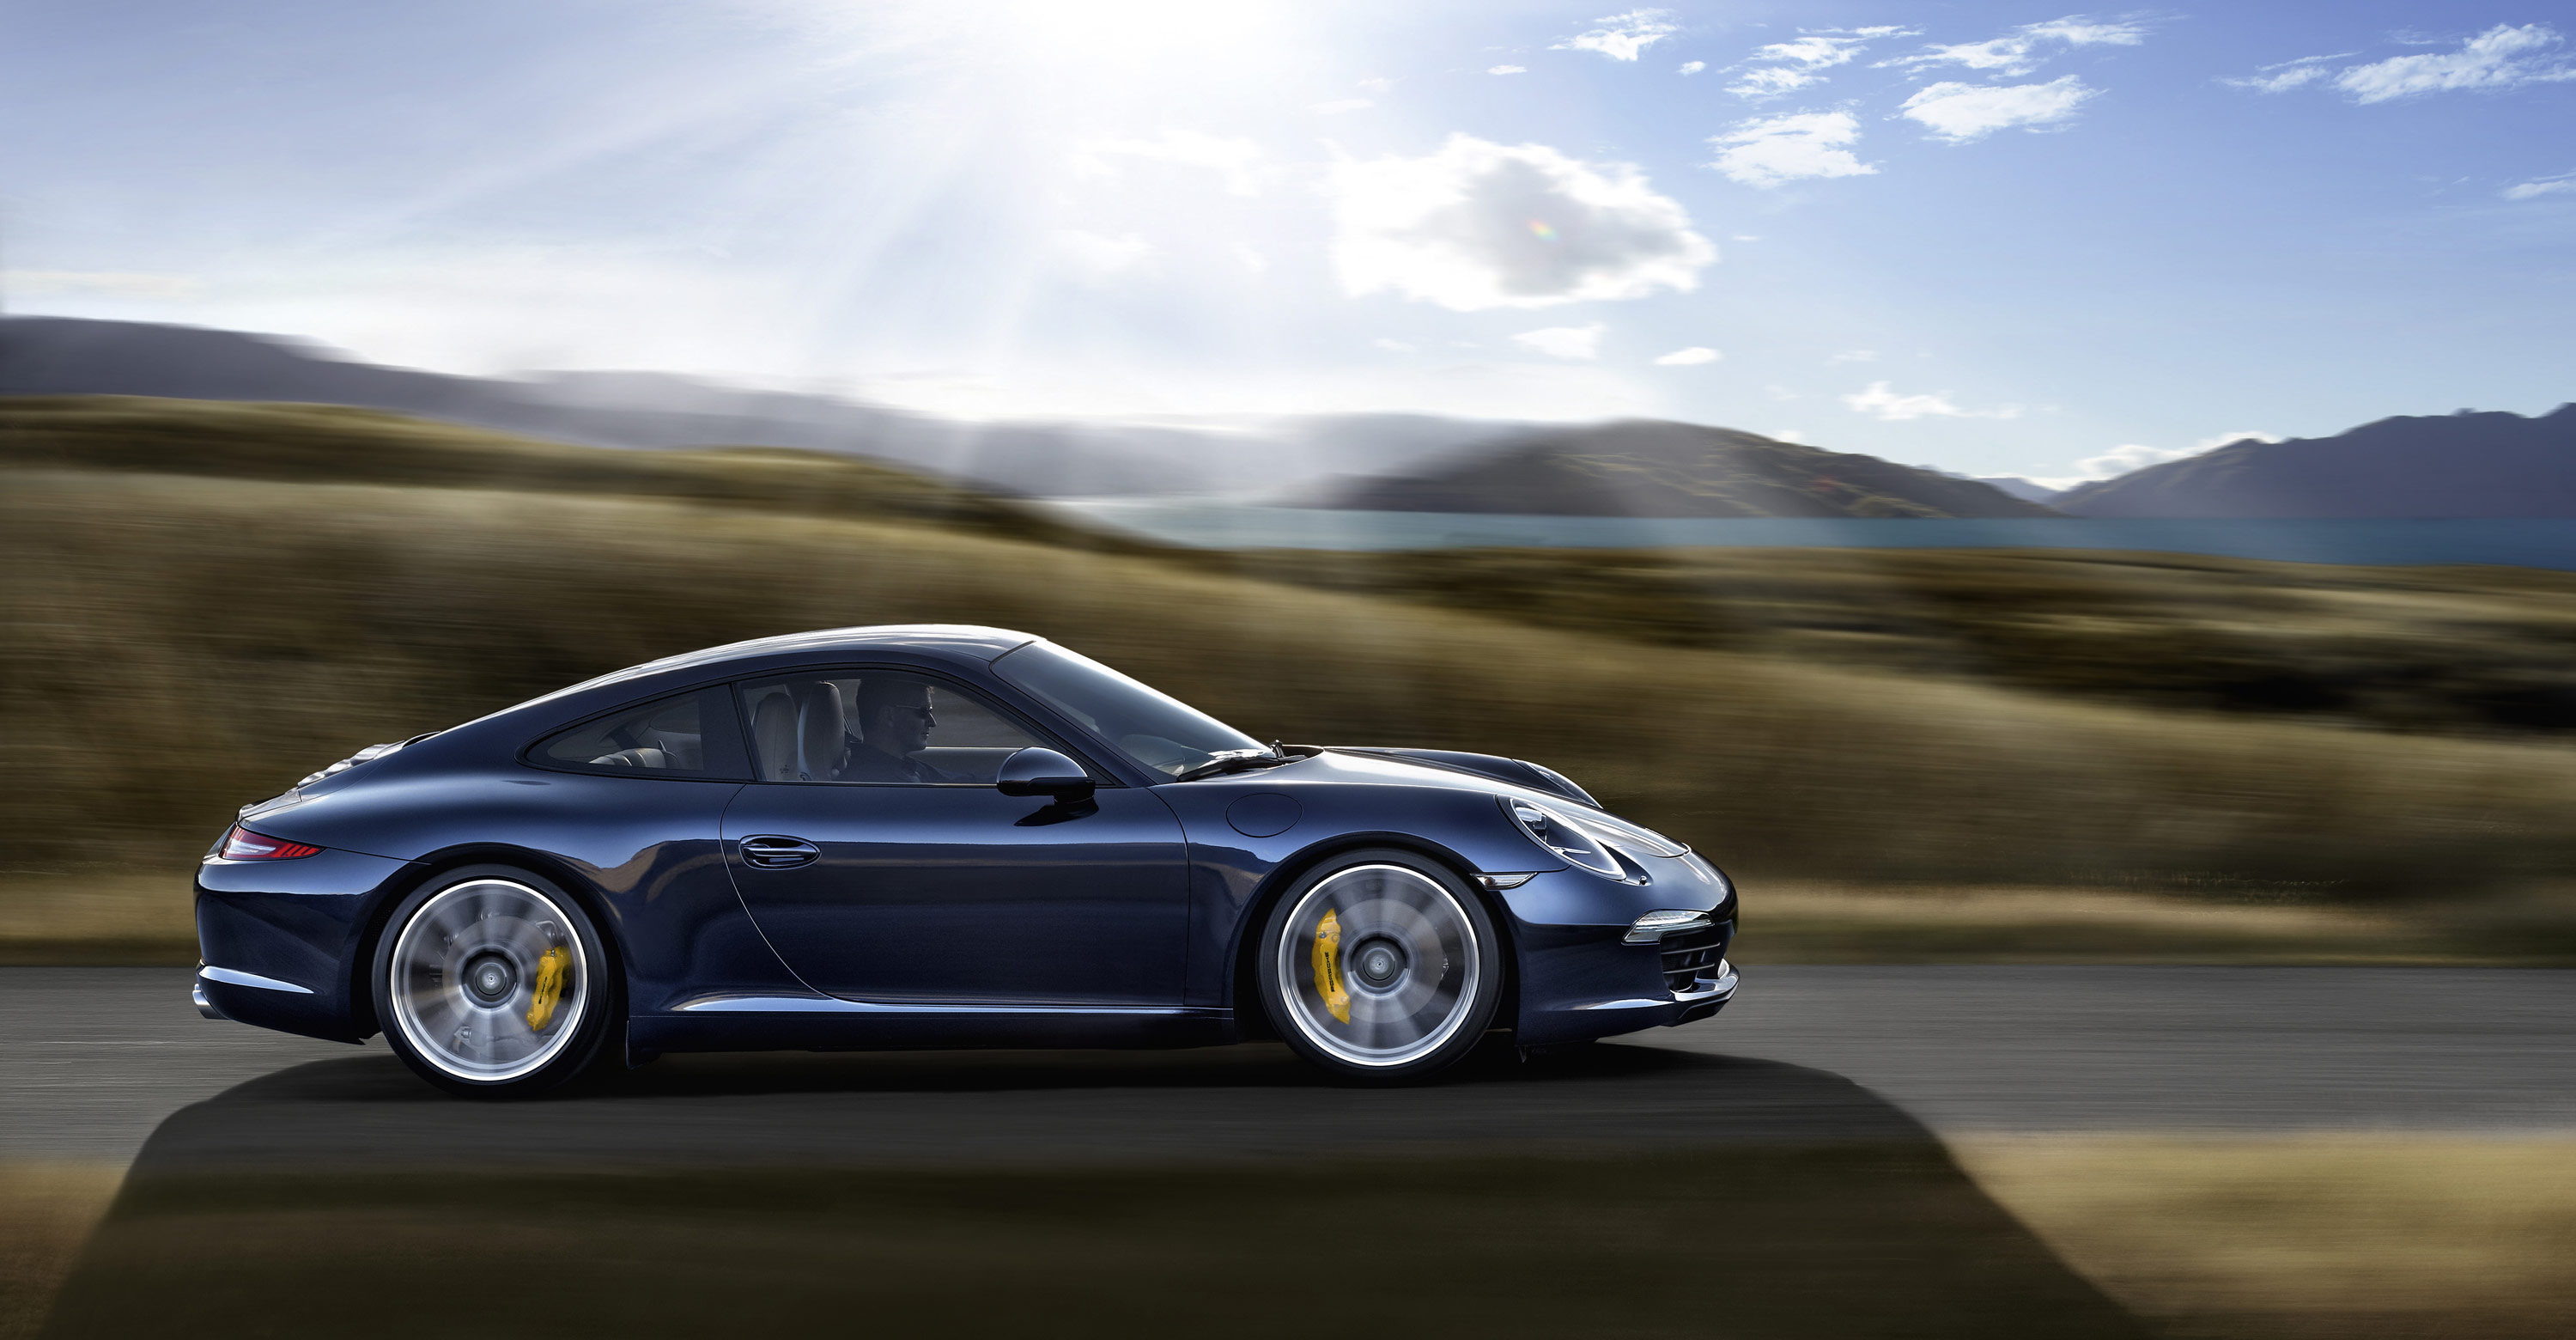 0 to 62mph official 2012 porsche 911 carrera s coup 991 the pictures. Black Bedroom Furniture Sets. Home Design Ideas